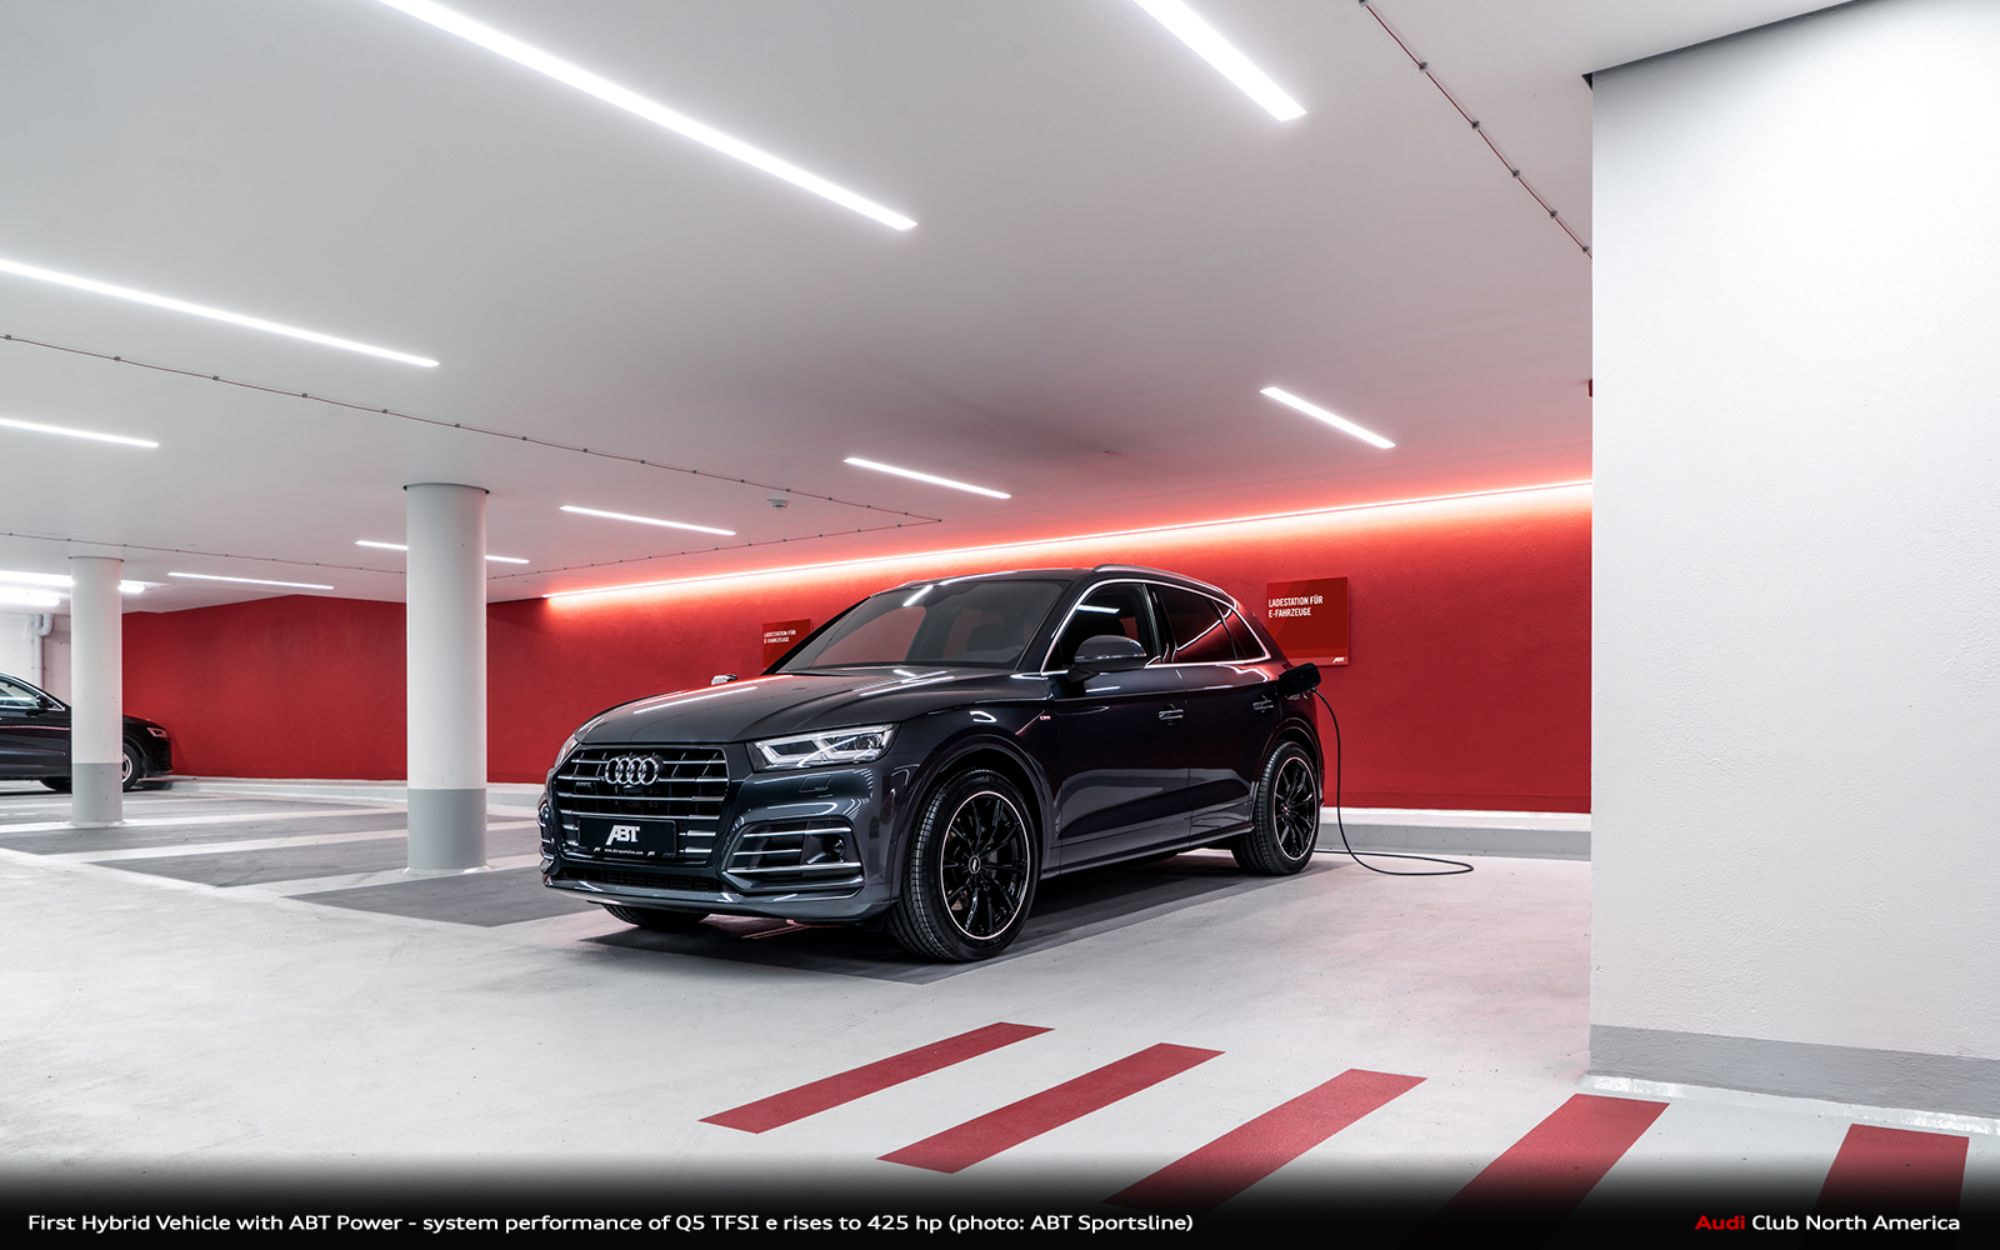 First Plug-in Hybrid Vehicle With ABT Power -  2020 Audi Q5 55 TFSI e